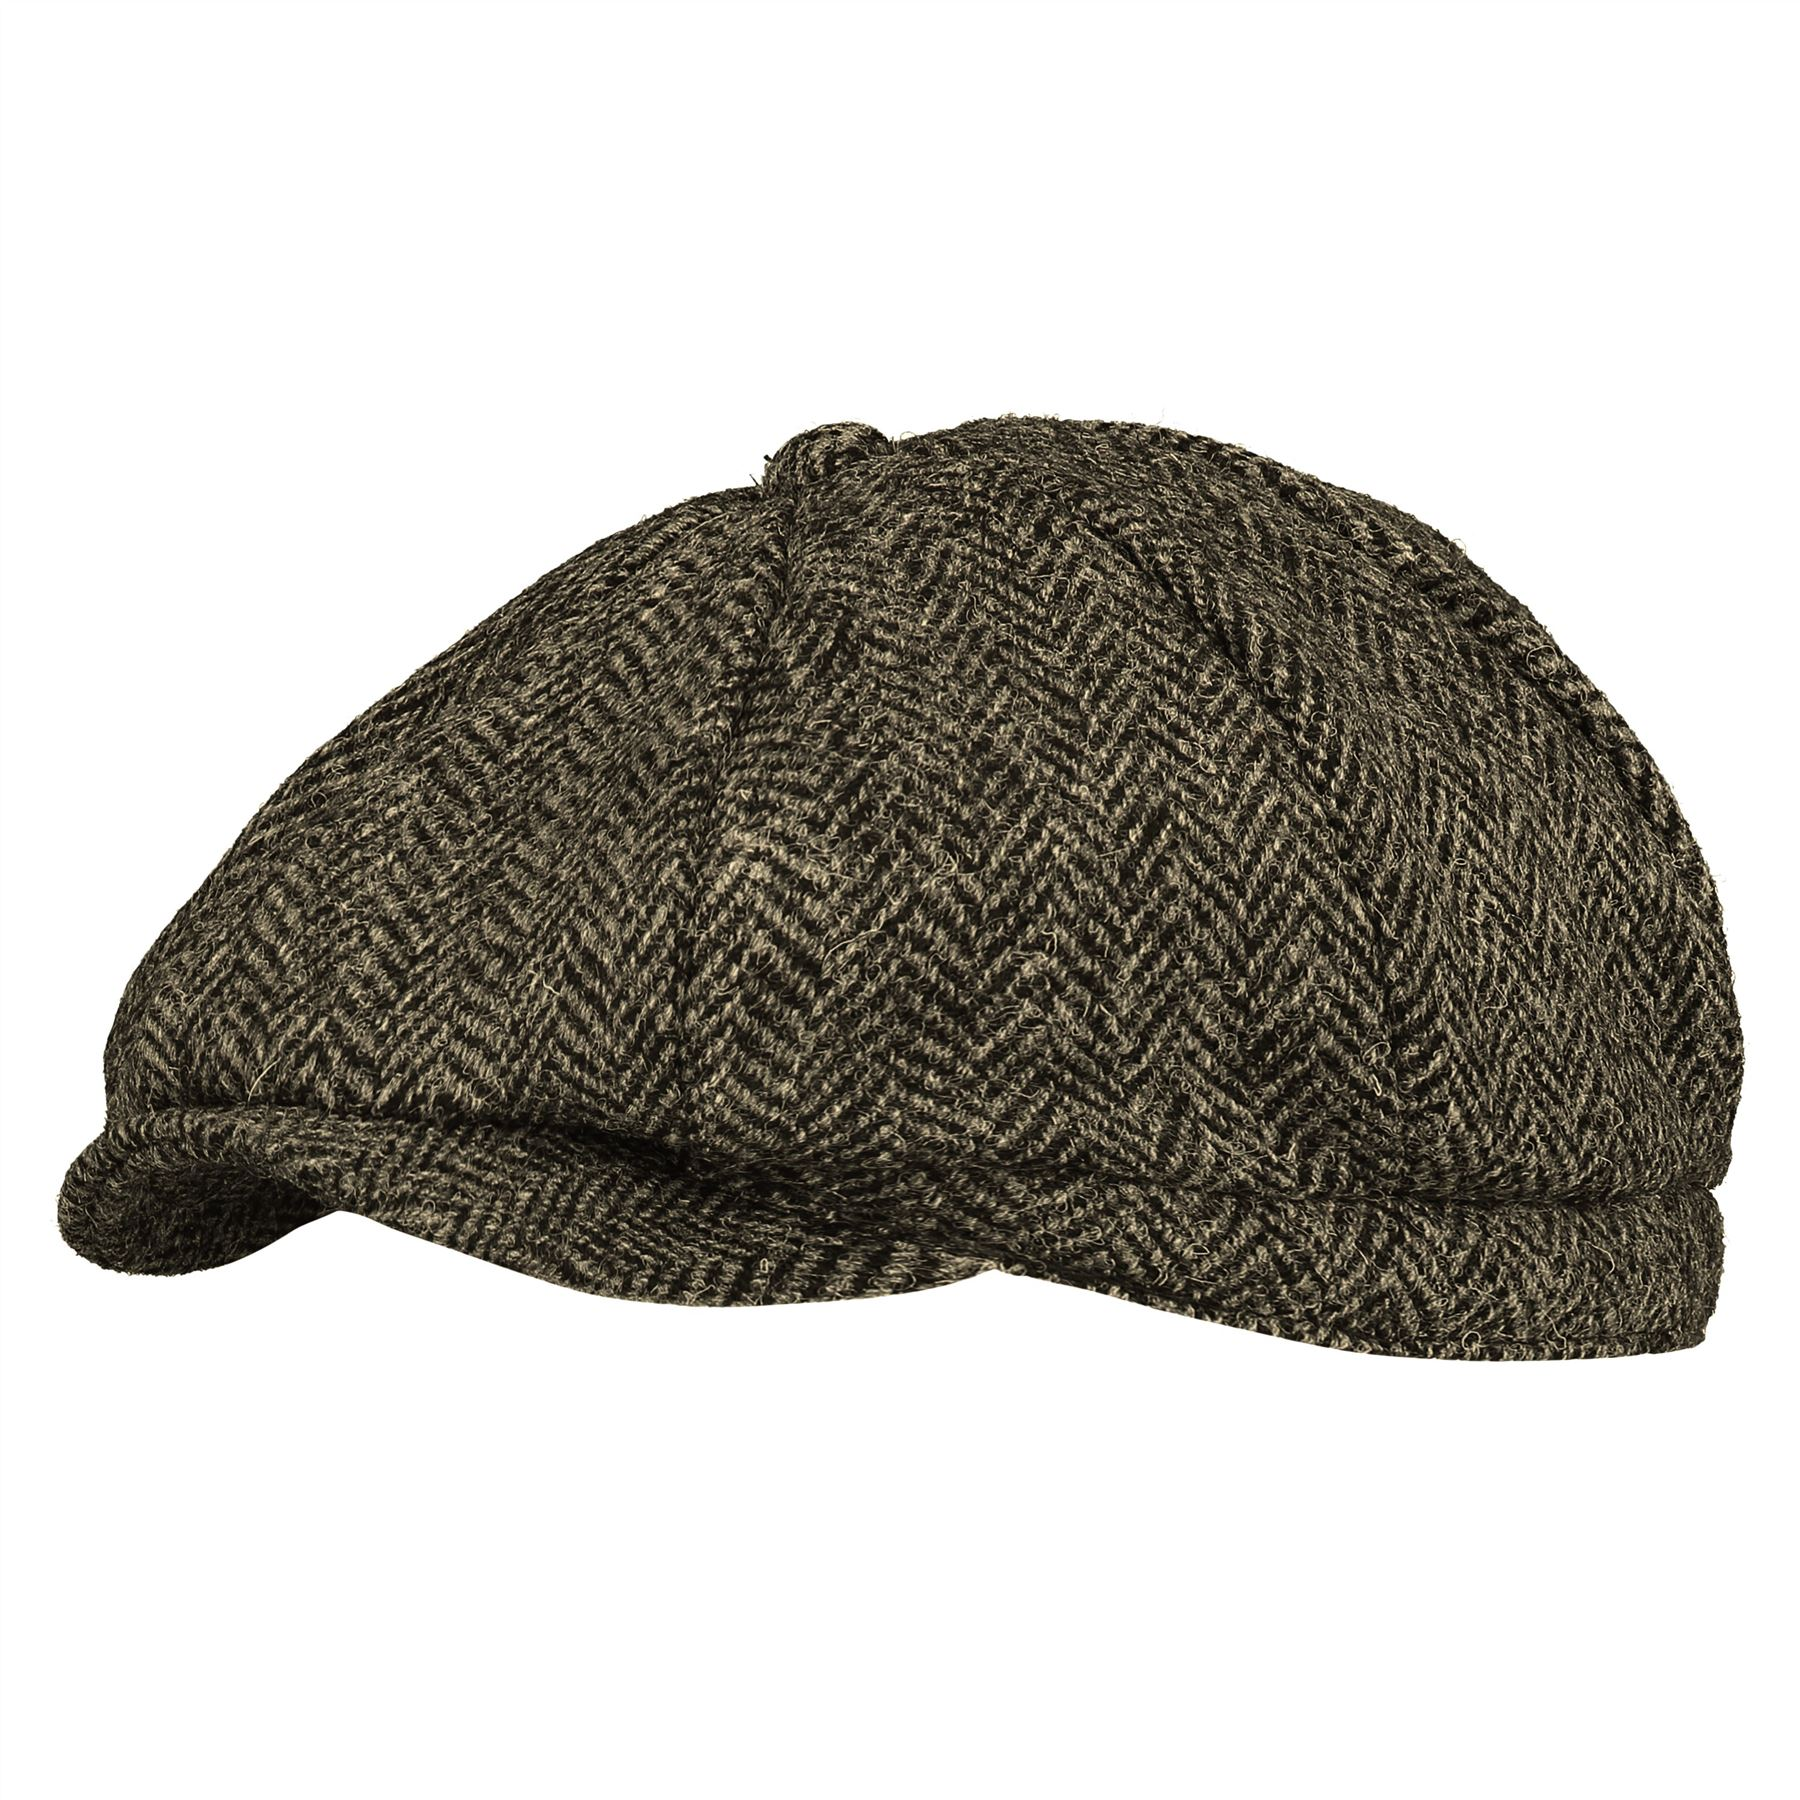 Image of Mens Bakerboy Hat - Tweed - 57